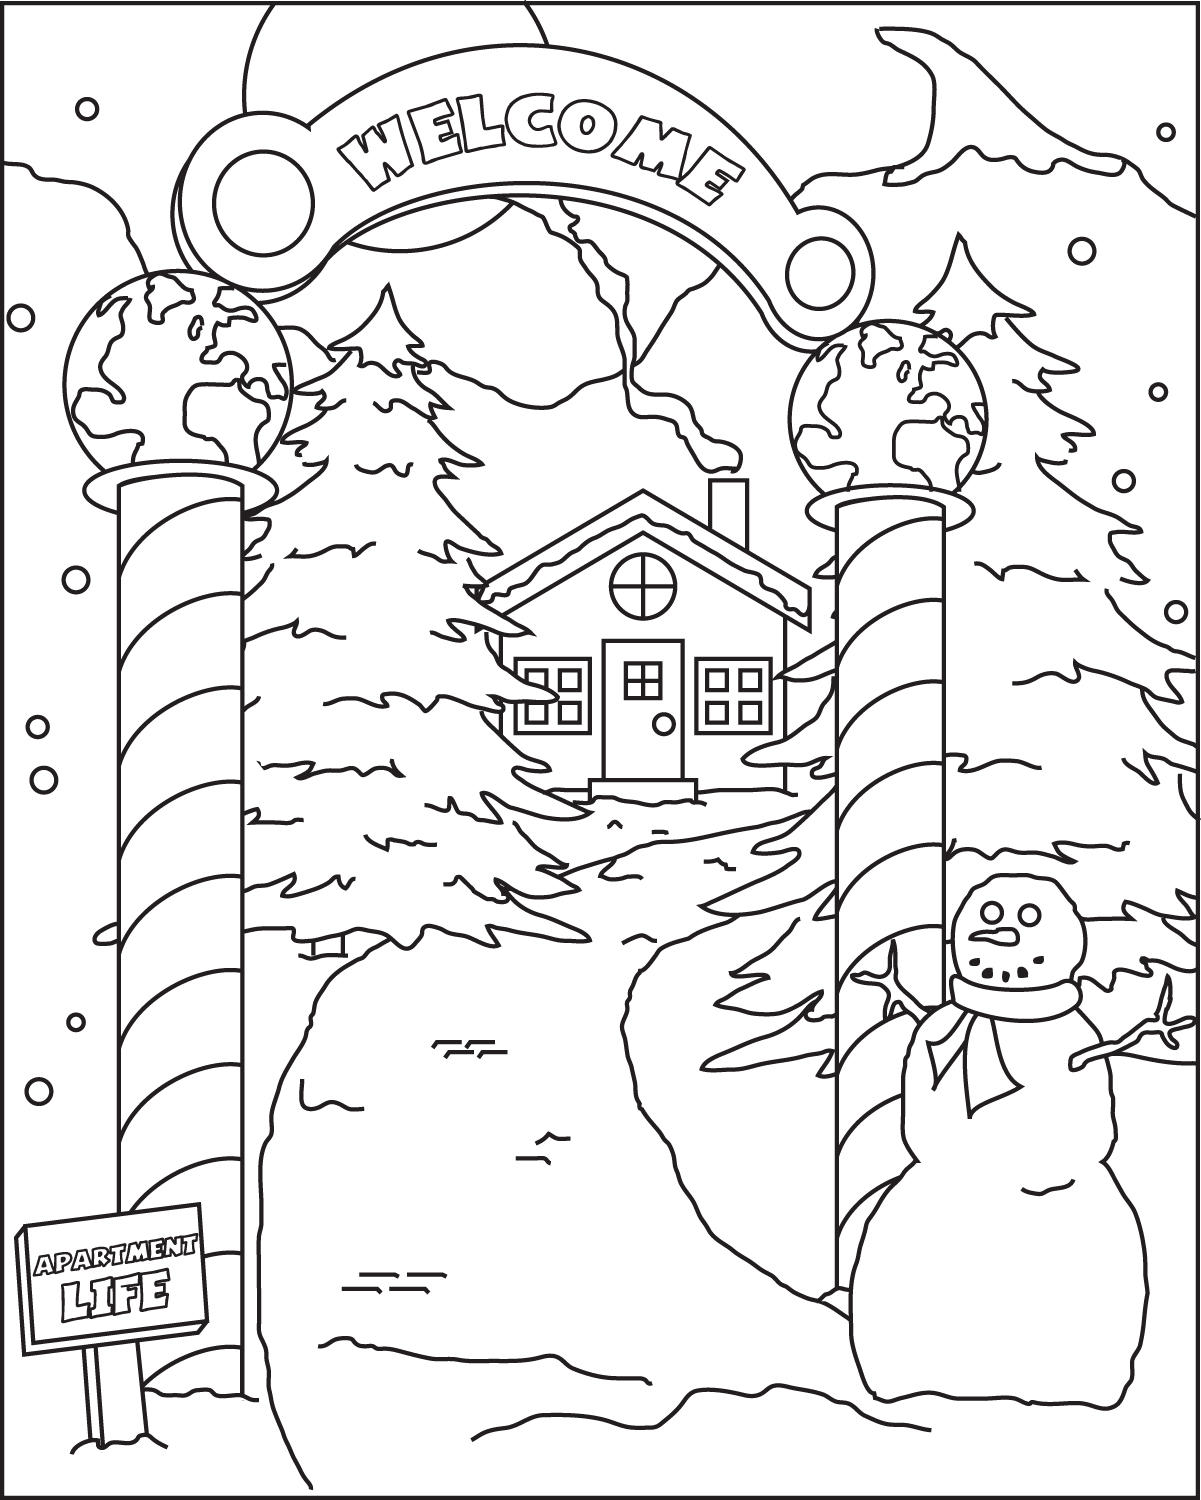 holiday coloring by pyzi holiday coloring by pyzi - Holiday Coloring